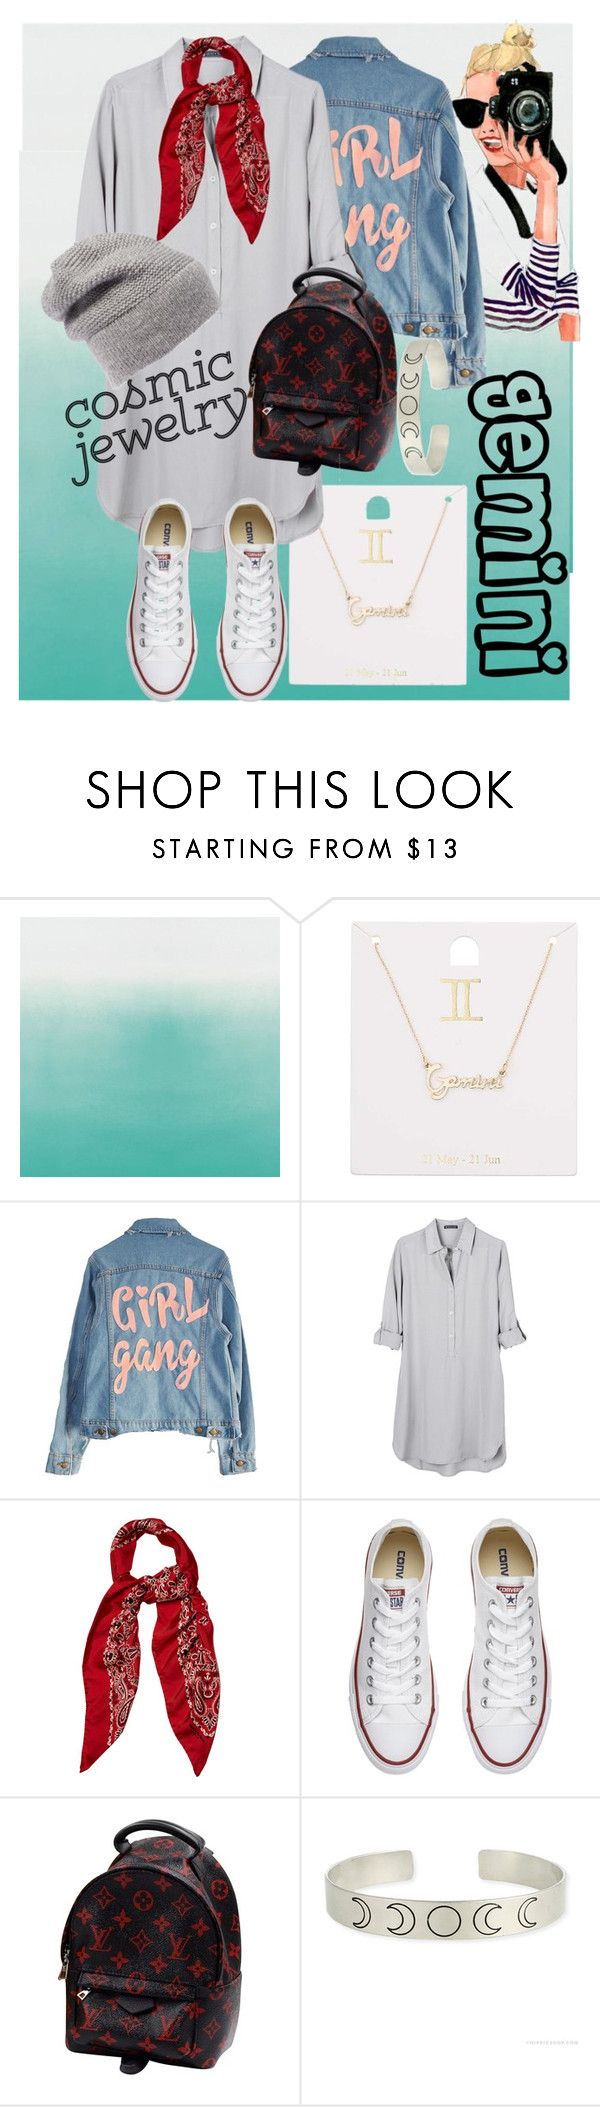 """""""gemini"""" by isabella-guran ❤ liked on Polyvore featuring Miss Selfridge, High Heels Suicide, United by Blue, Yves Saint Laurent, Converse, Louis Vuitton, Rebecca Minkoff and cosmicjewelry"""